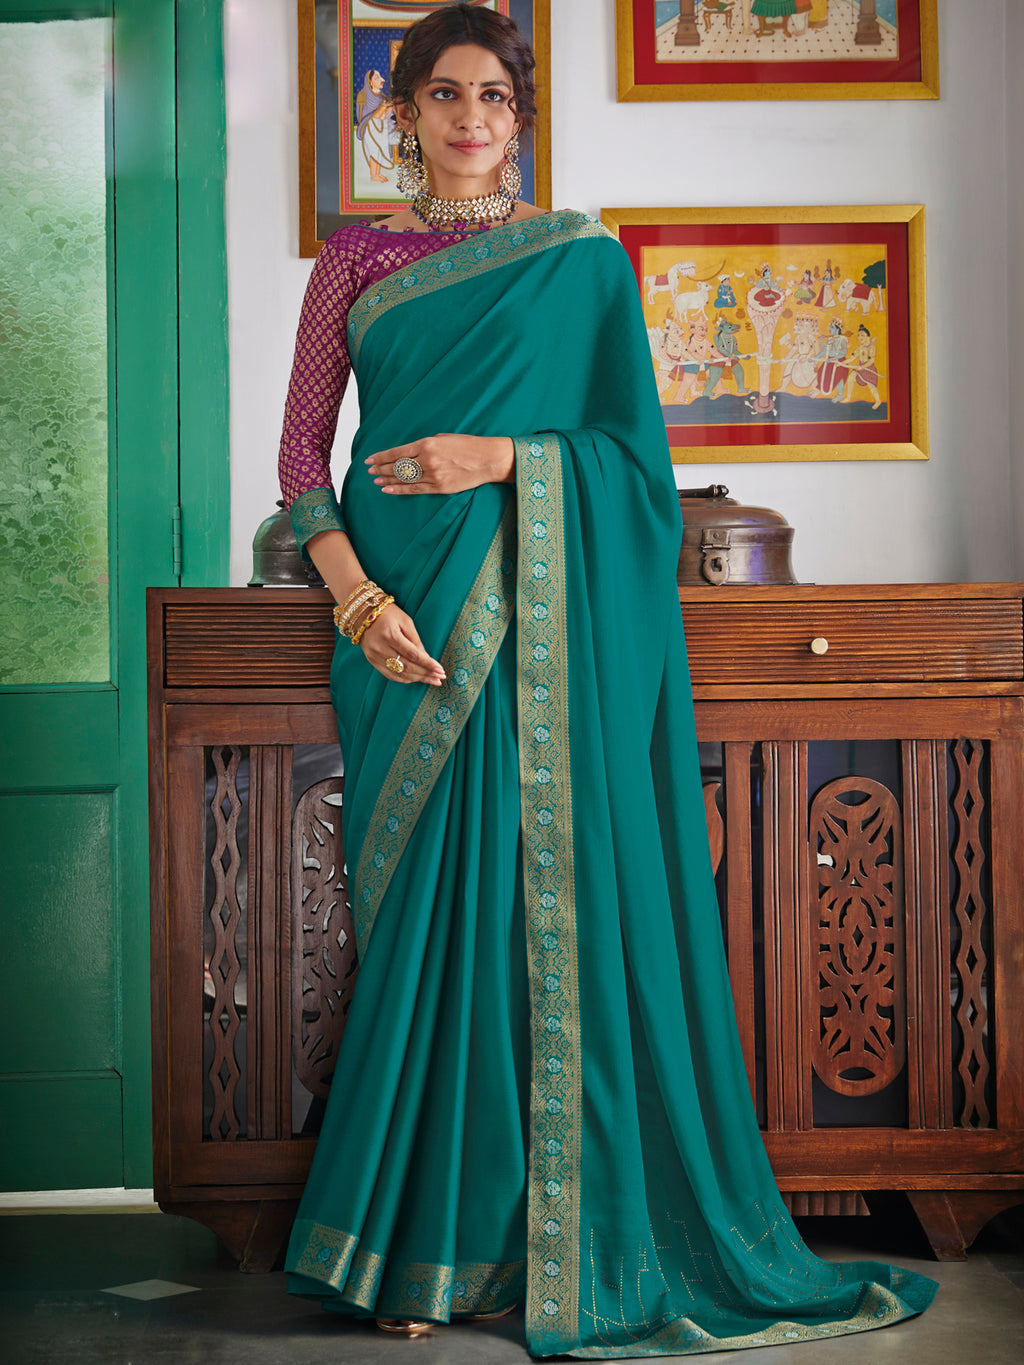 Aqua Blue Color Chiffon Festival & Function Wear Sarees NYF-9778